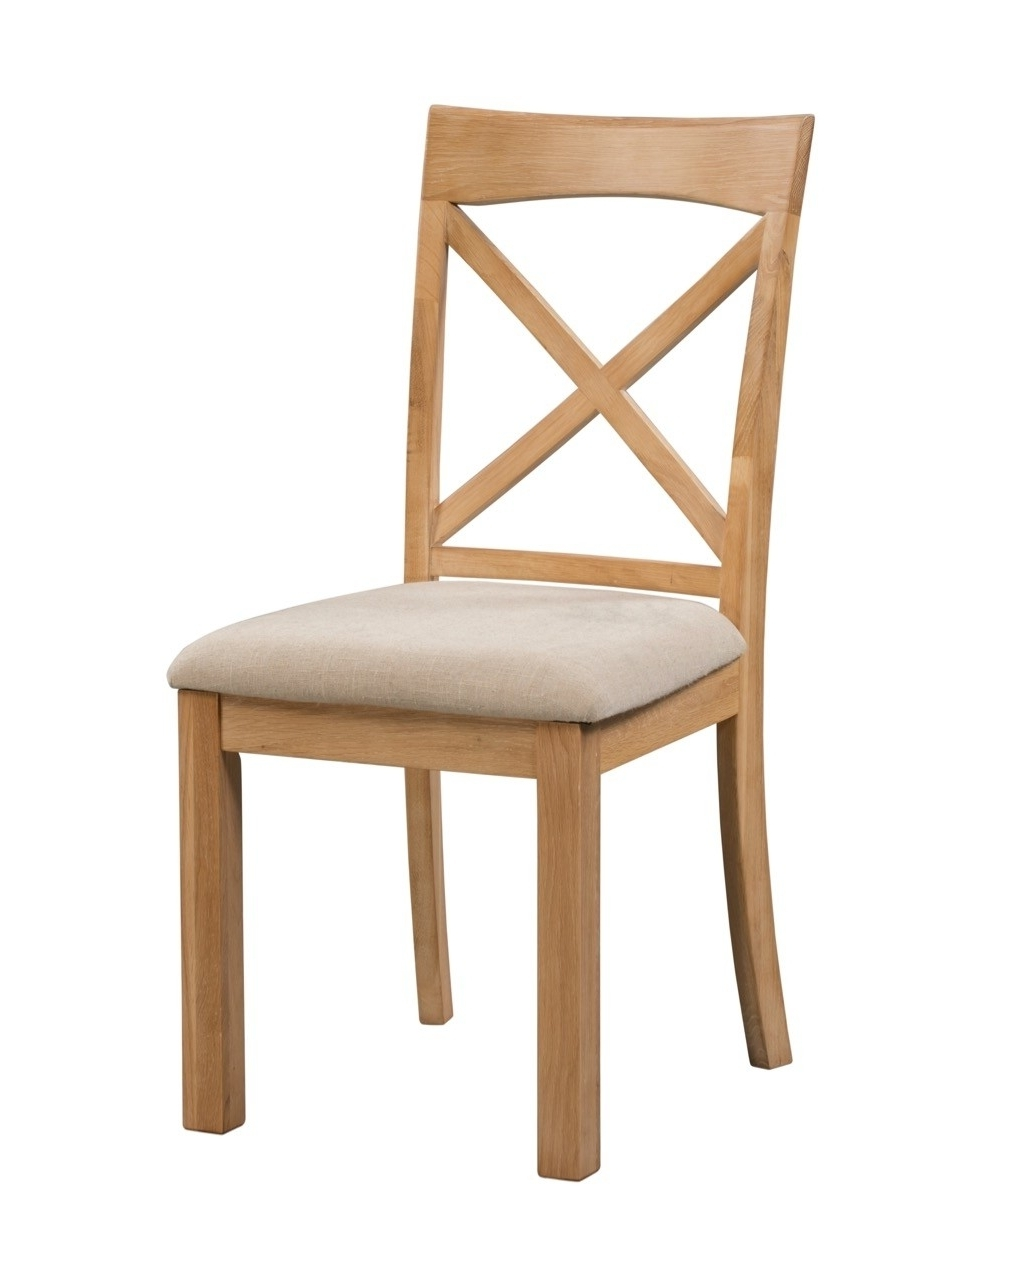 Oak Dining Chairs Within Current Boston Oak Dining Chair – Brand Interiors (View 21 of 25)